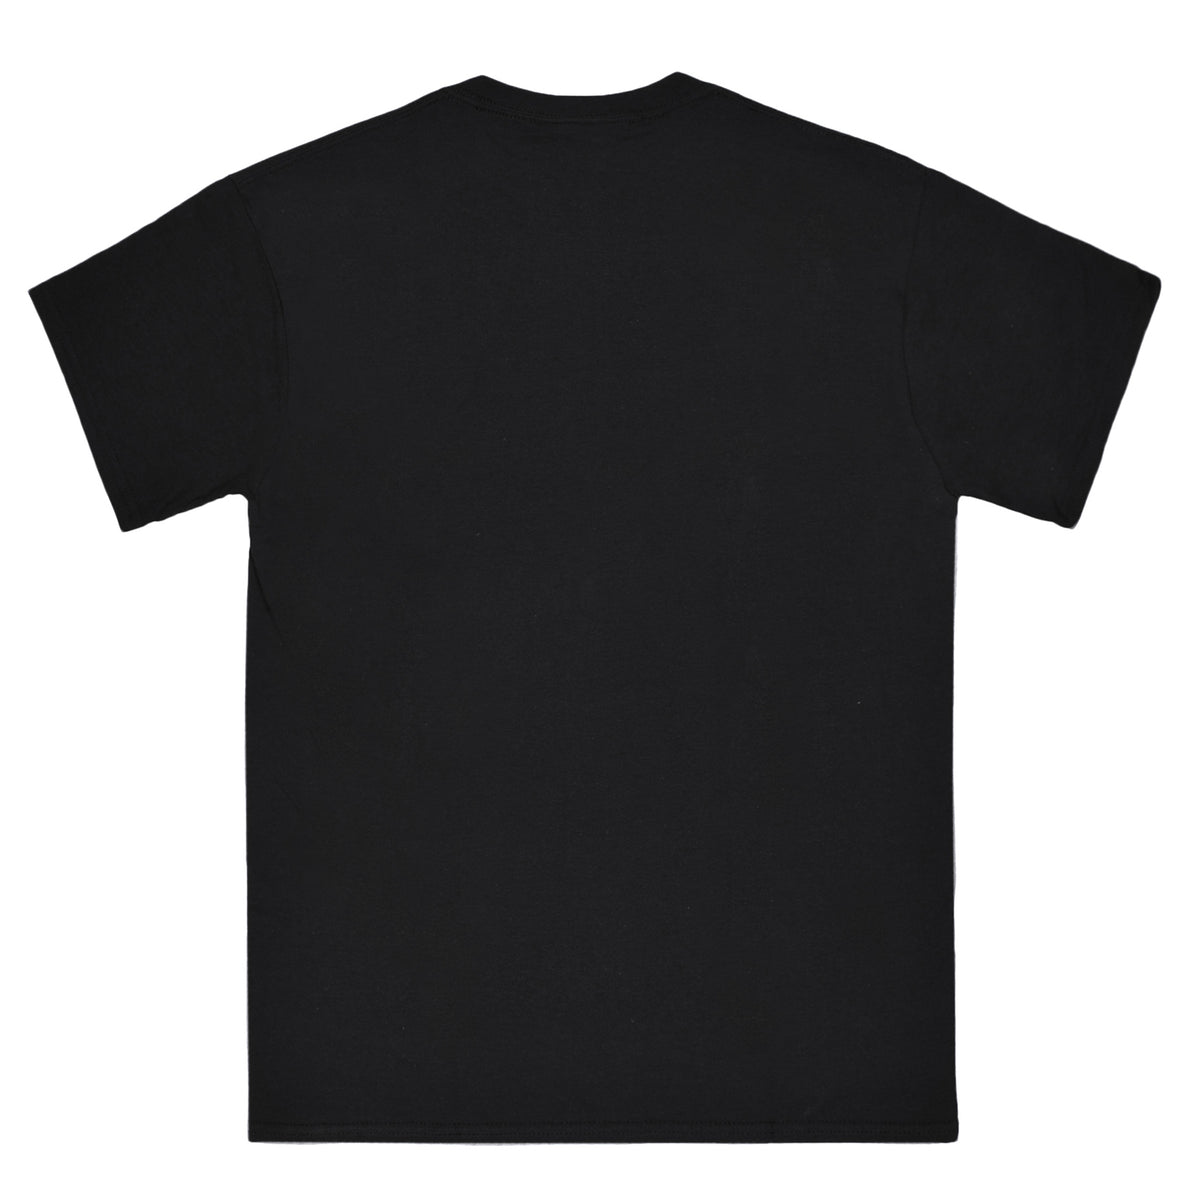 CAVENDOLI black tee - RAVE skateboards